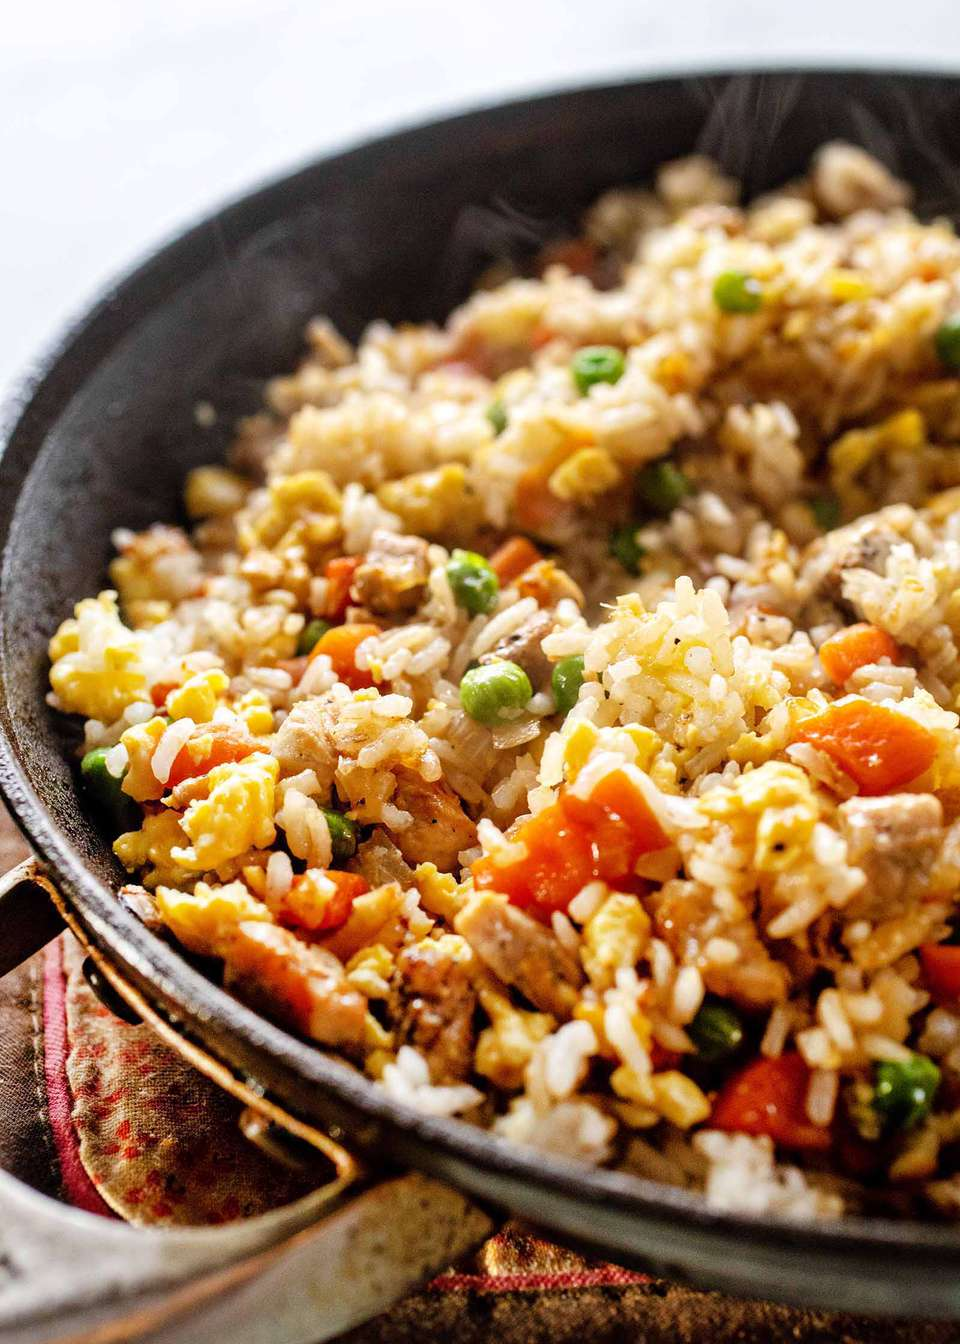 Black skillet with pork fried rice recipe cooking inside. Carrots and peas are mixed in the rice.